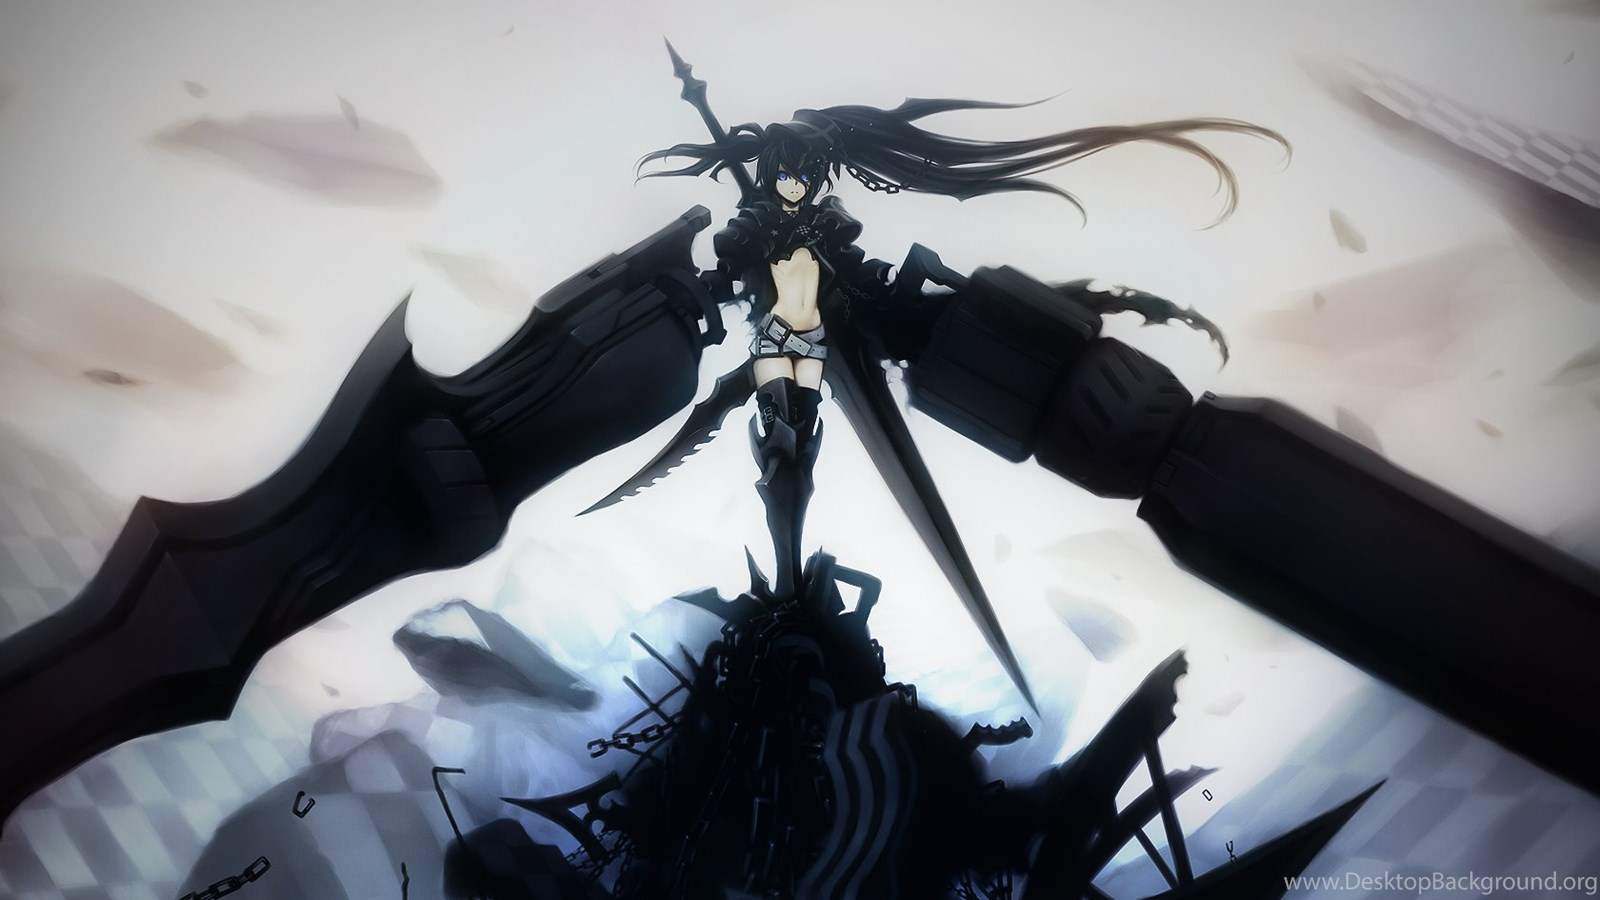 Overlord Anime Hd Wallpapers For Pc 7972 Amazing Wallpaperz Desktop Background